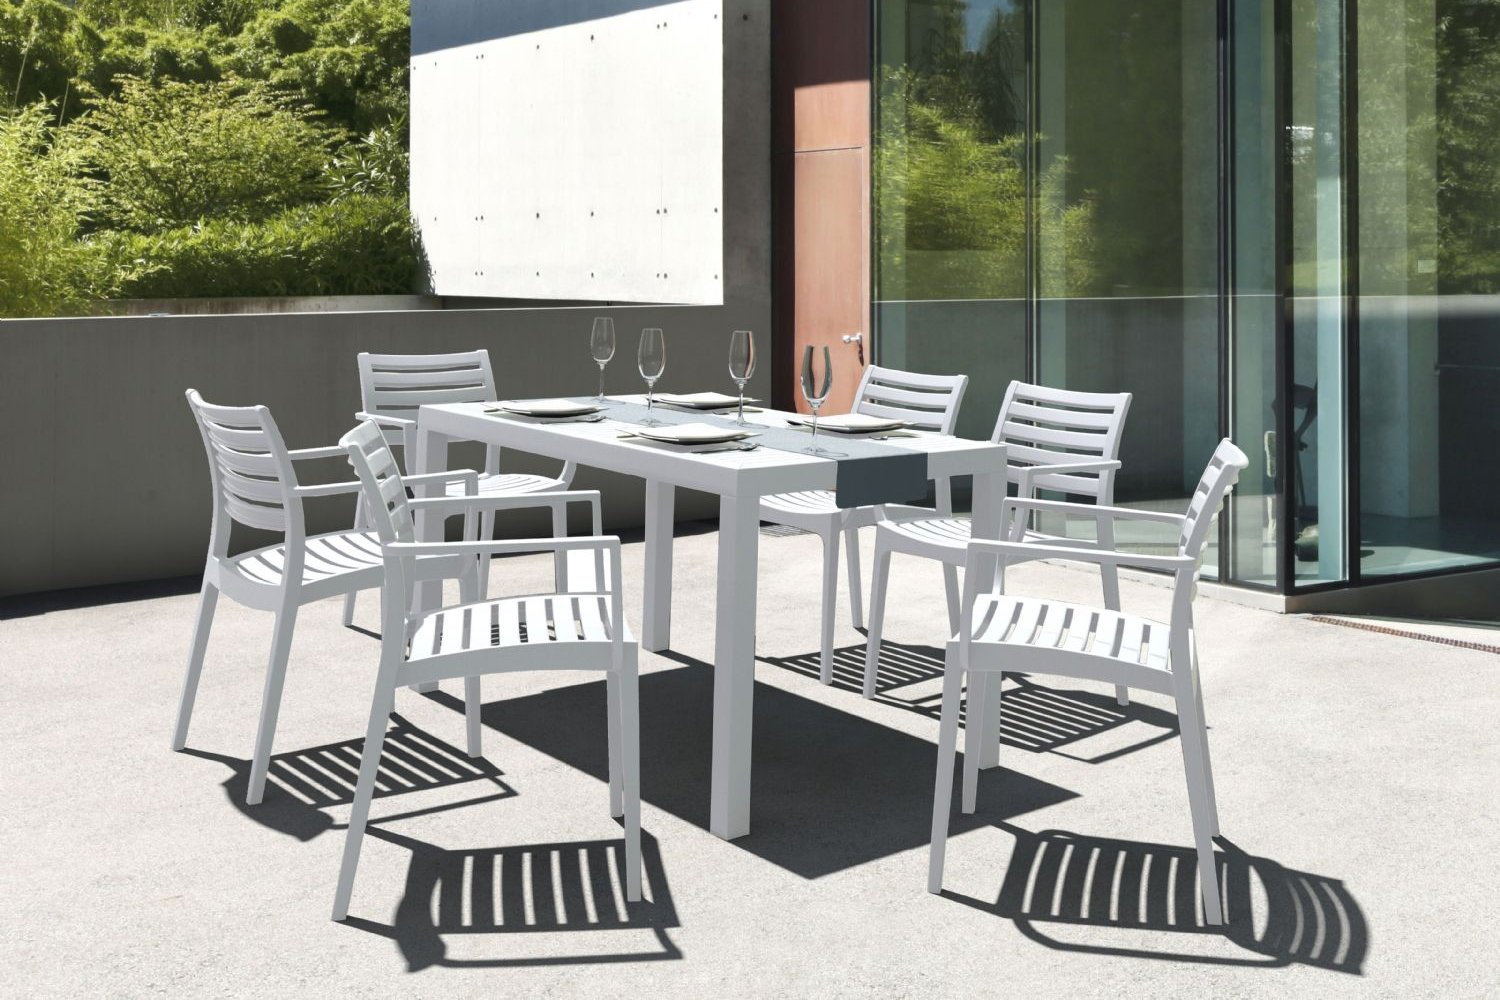 Artemis Resin Rectangle Outdoor Dining Set 7 Piece with Arm Chairs White ISP1862S-WHI - 9